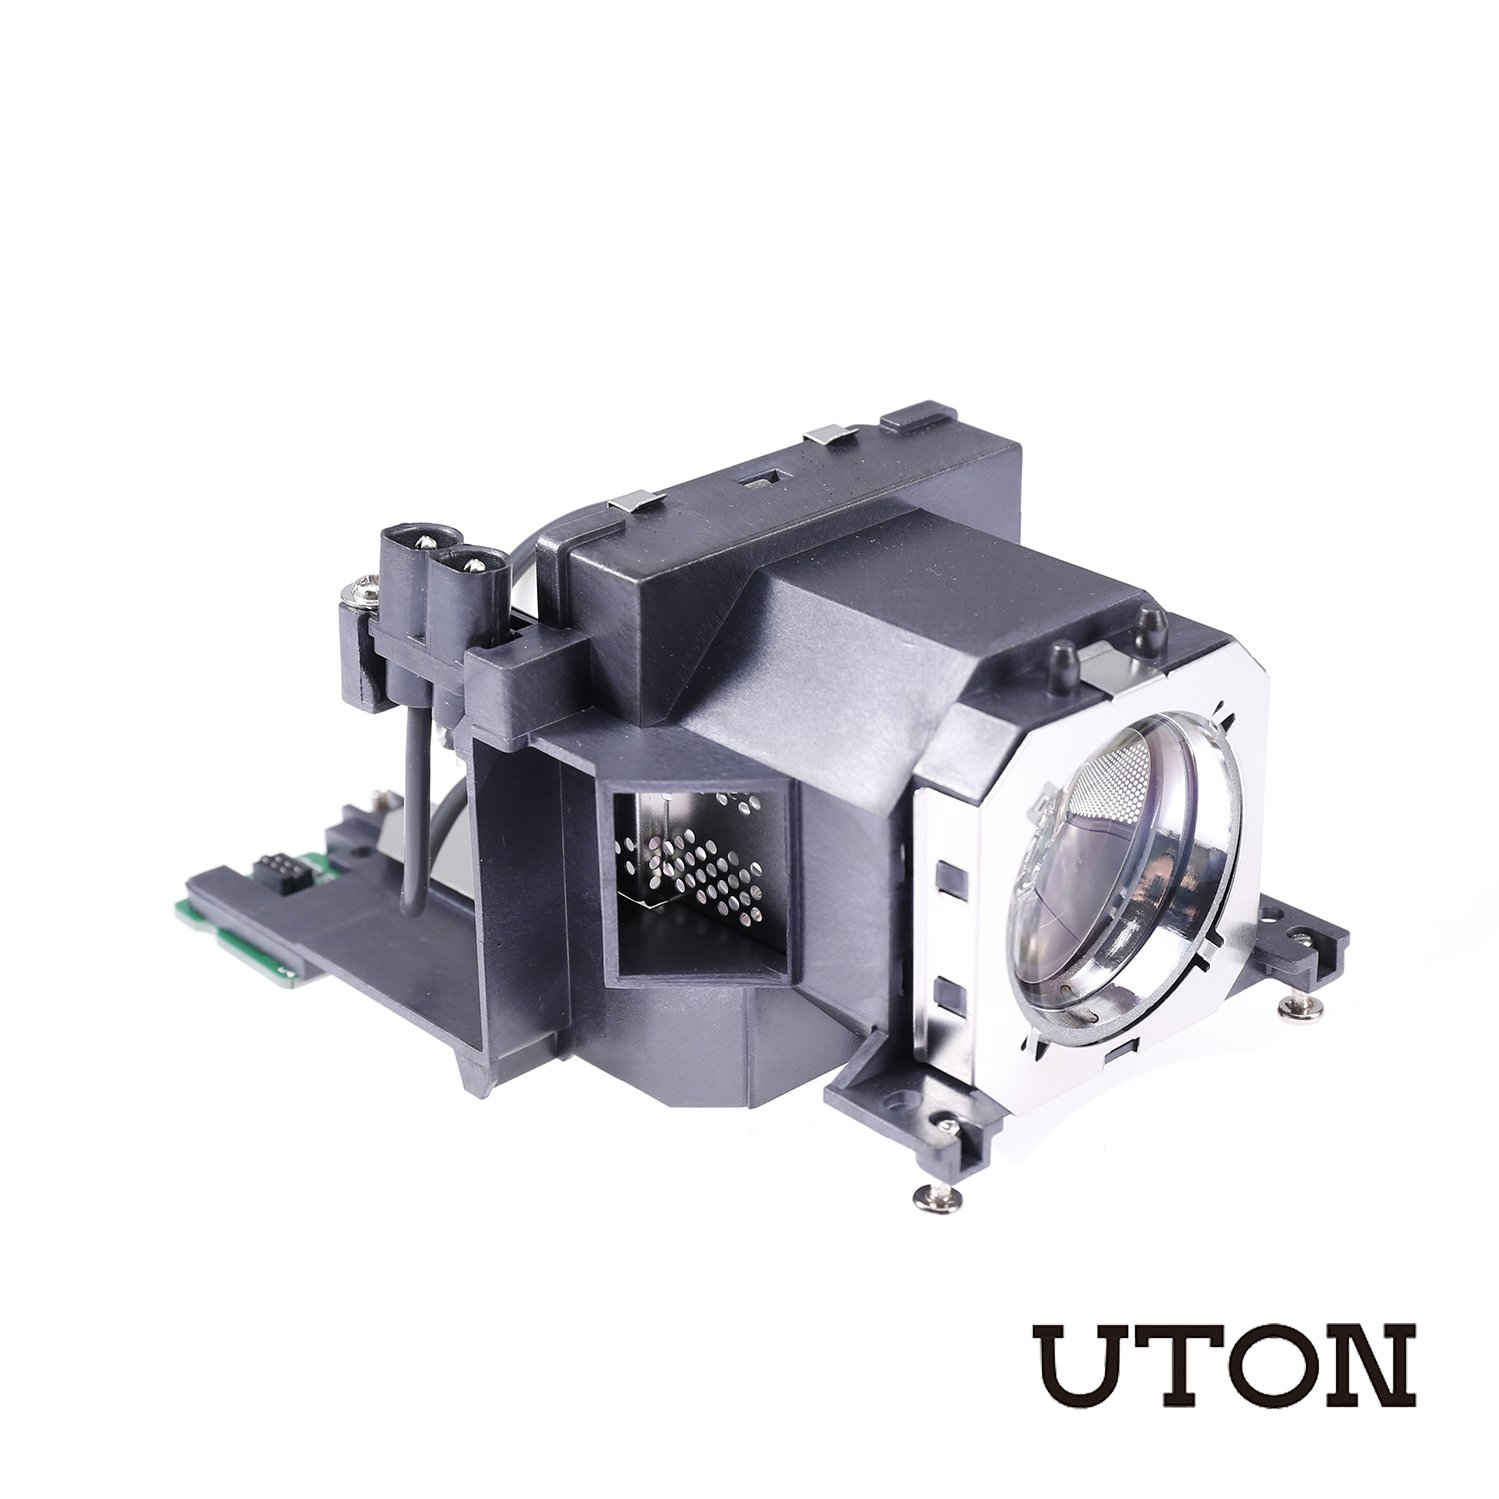 ET-LAV200 Projector Bulbs Replacement for PANASONIC PT-VW430 PT-VW431D PT-VW435N PT-VW440 PT-VX500 PT-VX505N PT-VX510 (Uton)